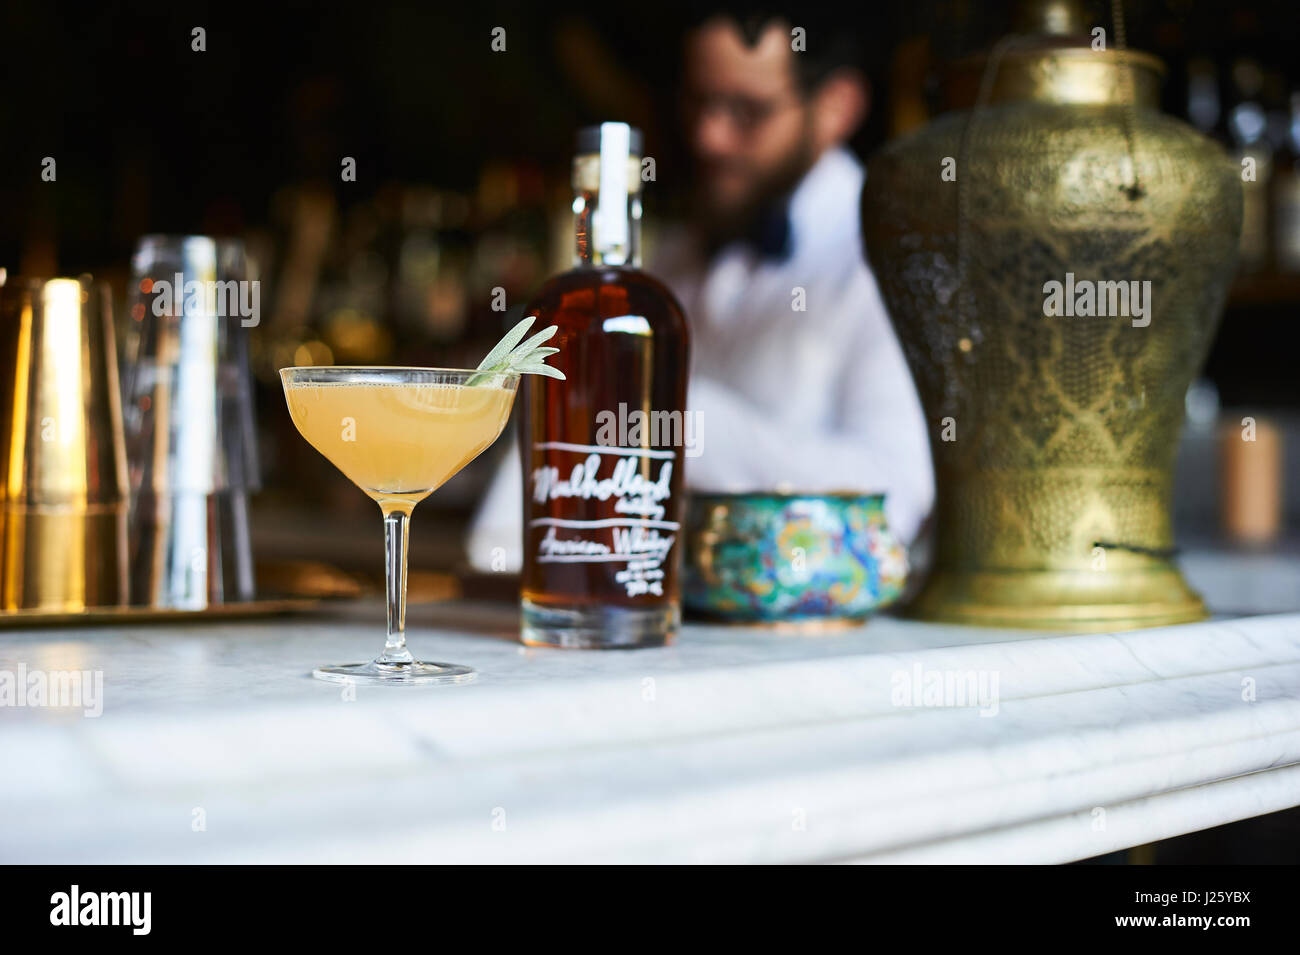 Mixologist crafting cocktails at bar stella in Los Angeles, CA. - Stock Image